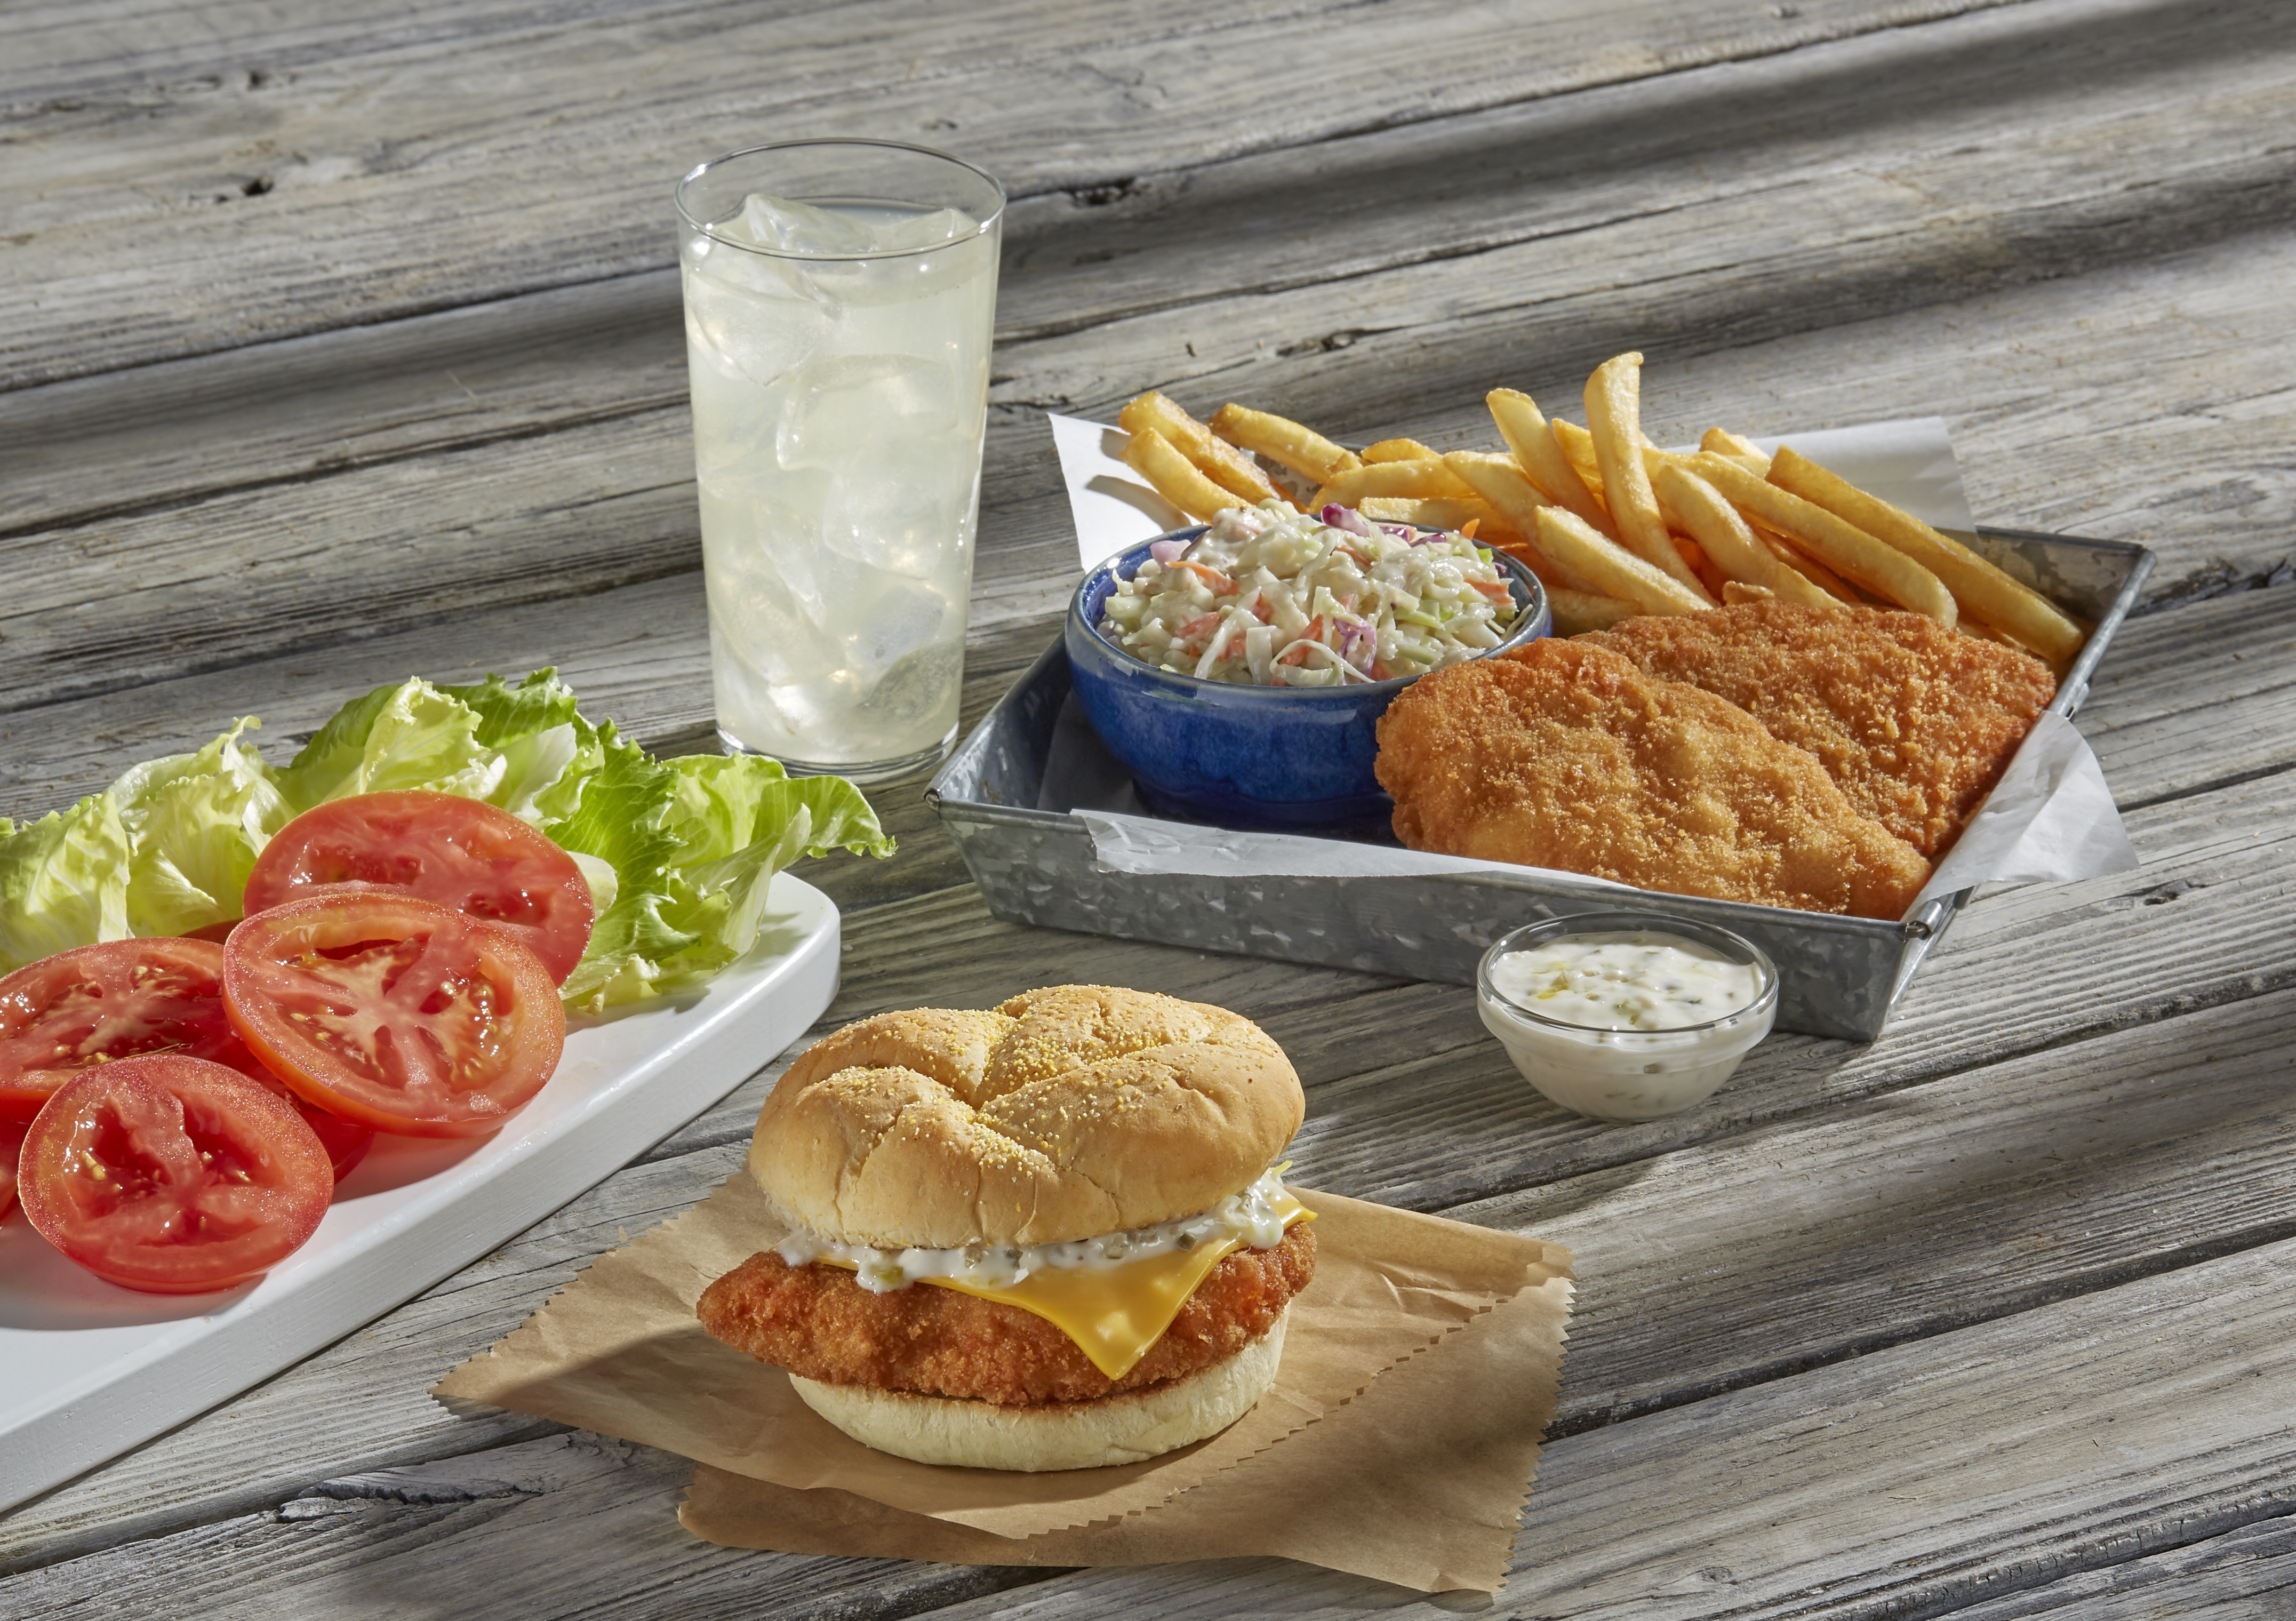 Fast Food Places Open Near Me Today - My Food